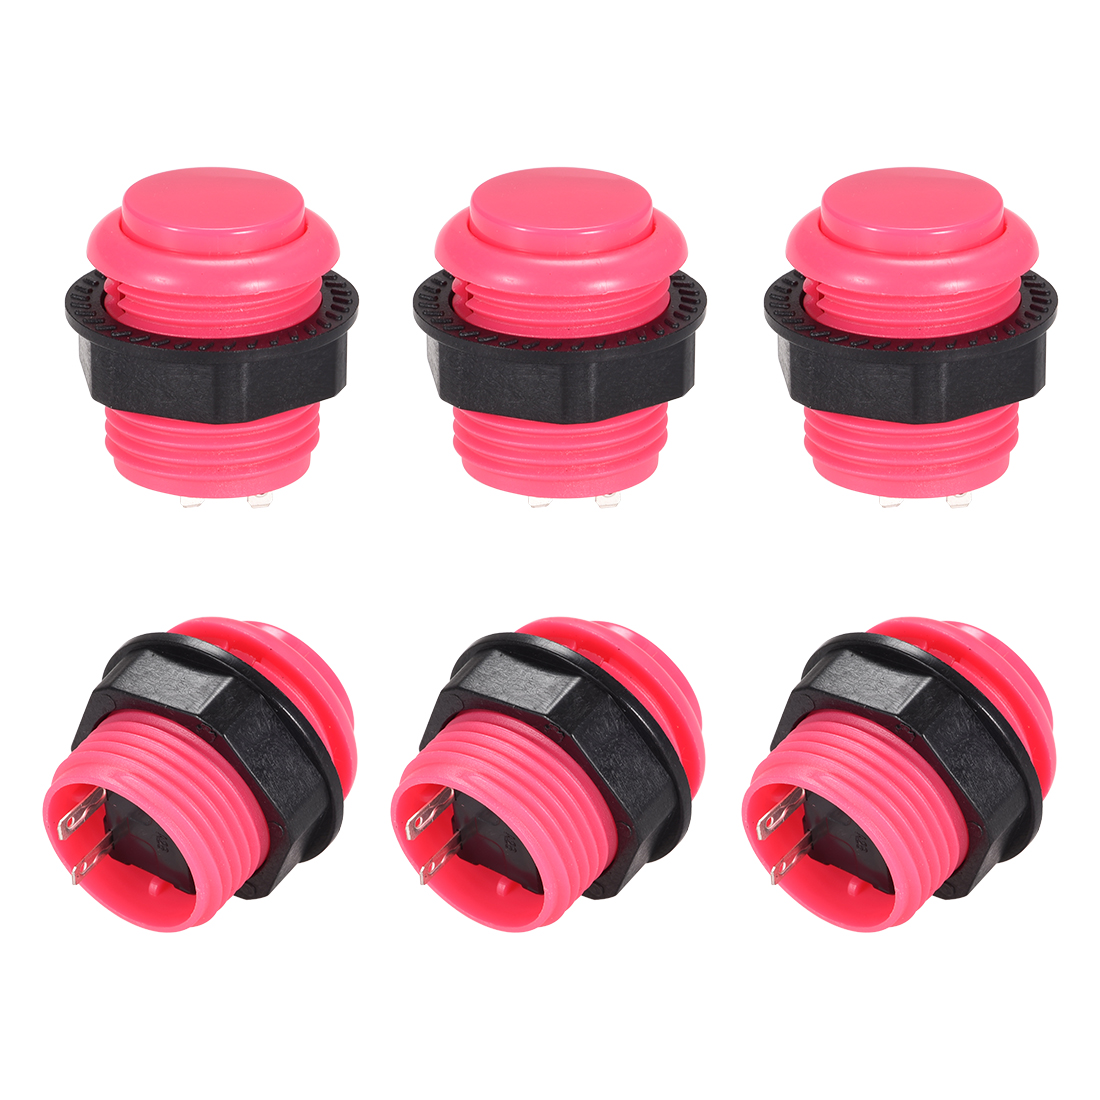 23.6mm Momentary Game Push Button Switch for Arcade Video Games Pink 4pcs